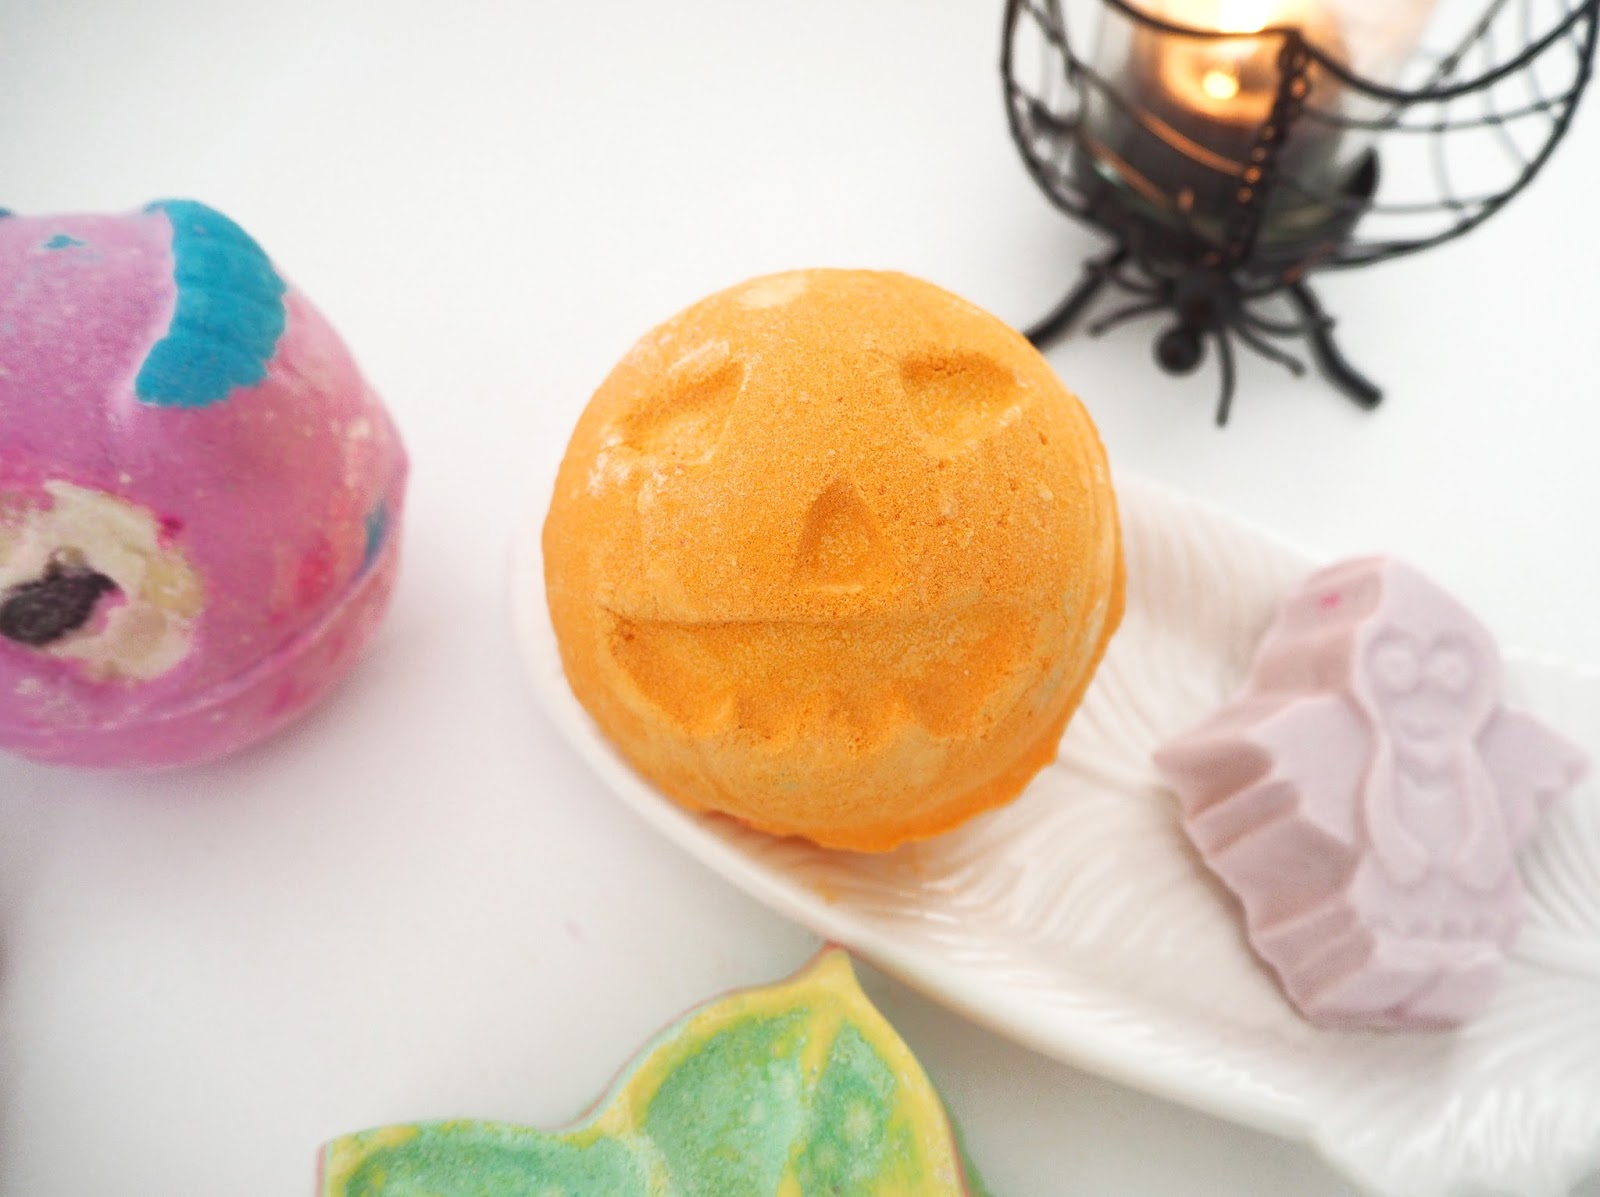 Lush Halloween Collection 2016, Katie Kirk Loves, Pumpkin Bath Bomb, Beauty Blogger, Bath Products, Lush UK